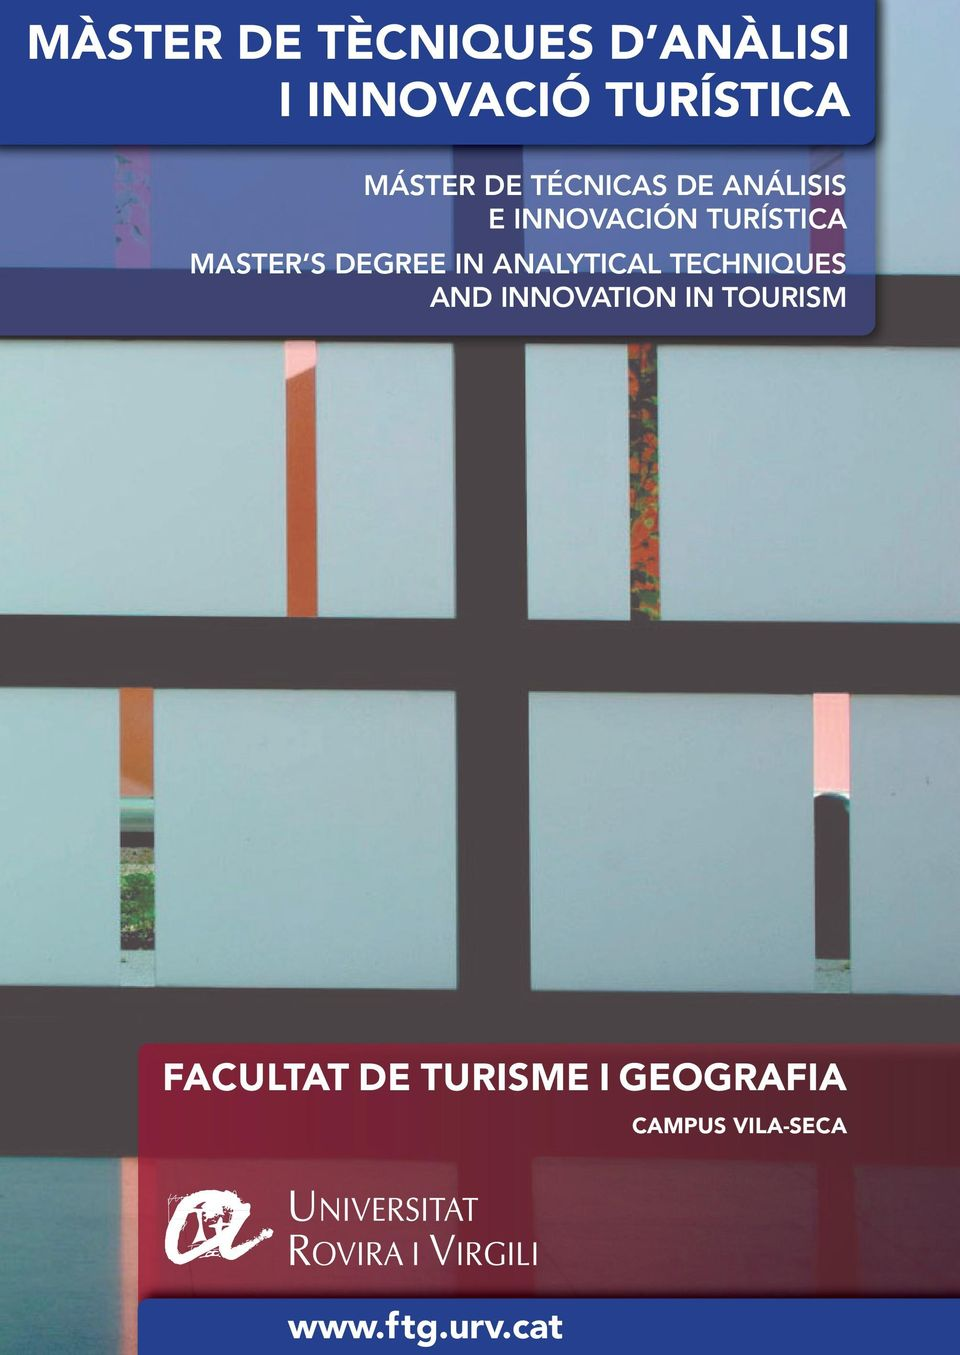 DEGREE IN ANALYTICAL TECHNIQUES AND INNOVATION IN TOURISM